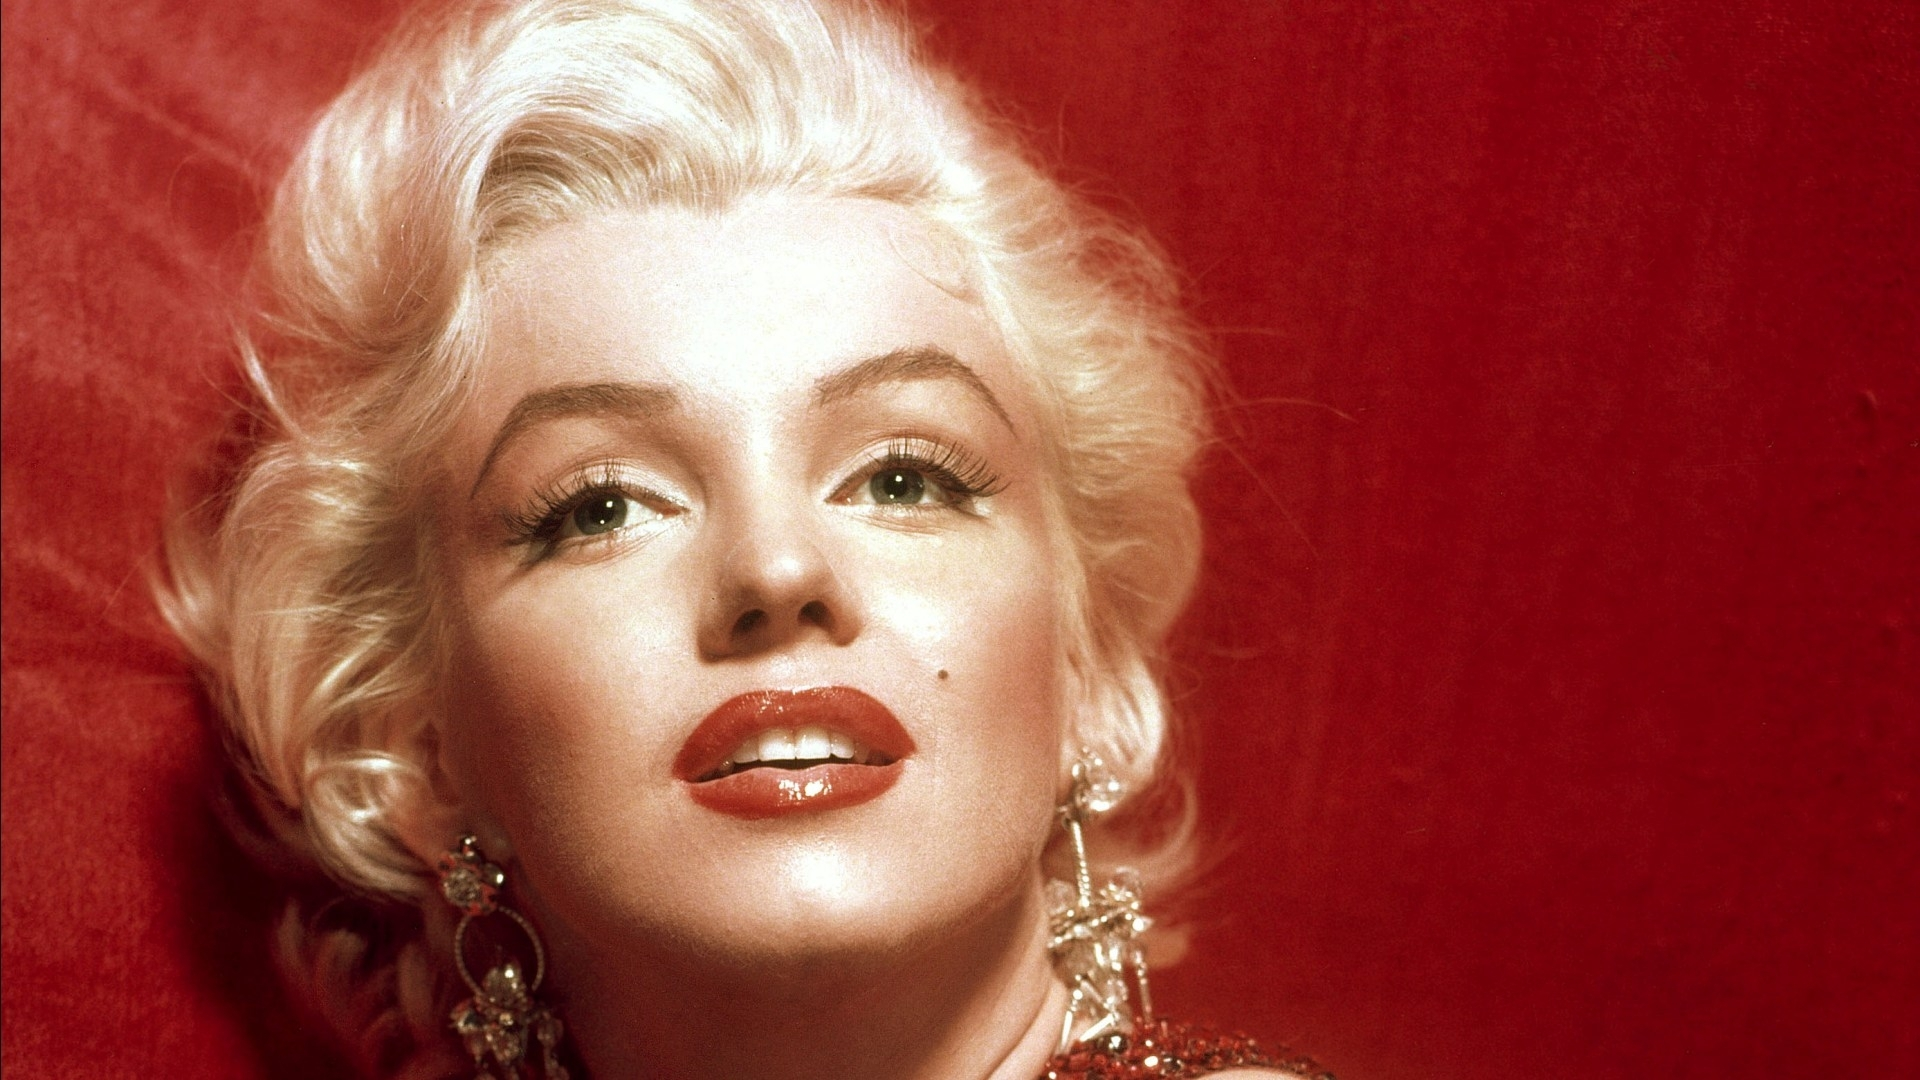 Marilyn monroe full hd wallpaper and background image 1920x1080 celebrity marilyn monroe wallpaper voltagebd Image collections